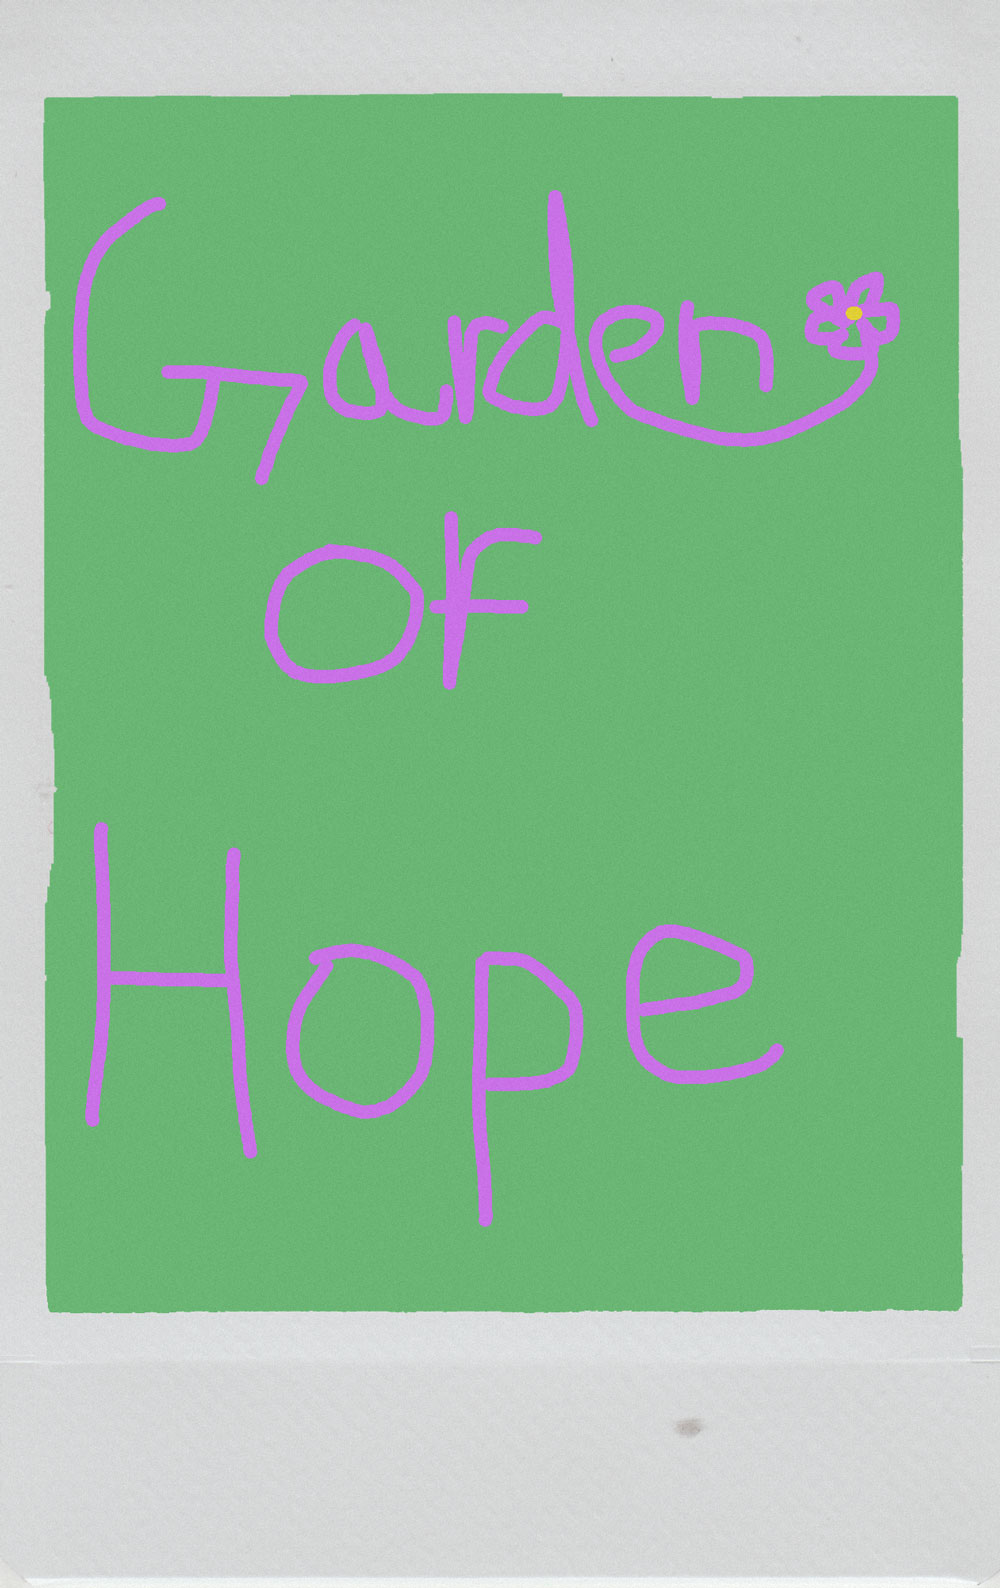 From Thoughts to Poems: A Garden of Hope